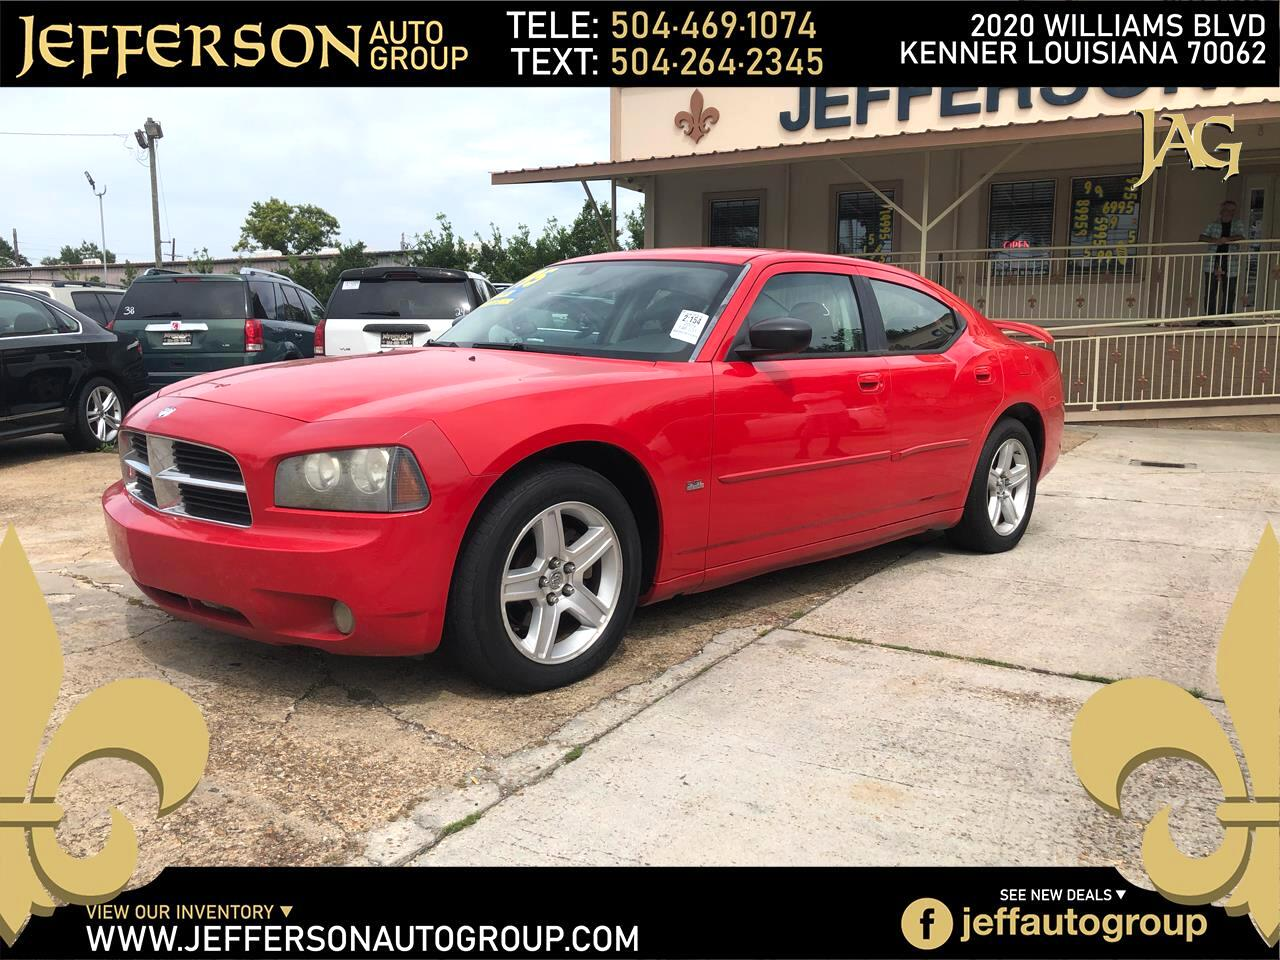 Dodge Charger 4dr Sdn SXT RWD 2009